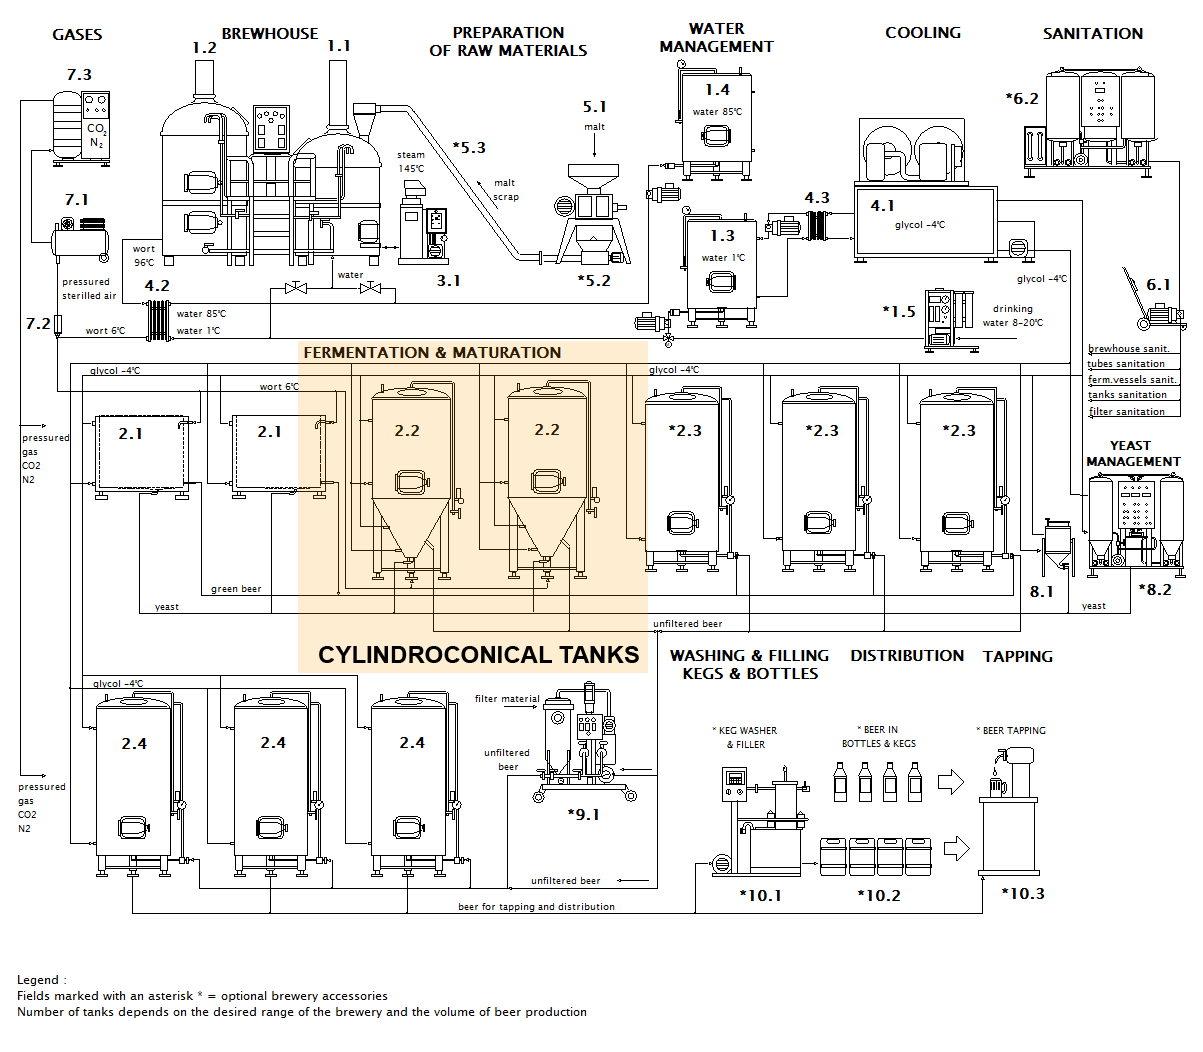 Cct Cylindrical Conical Fermentation Tanks Cmb Piping Layout Wikipedia Position Of In Typical Czech Brewery